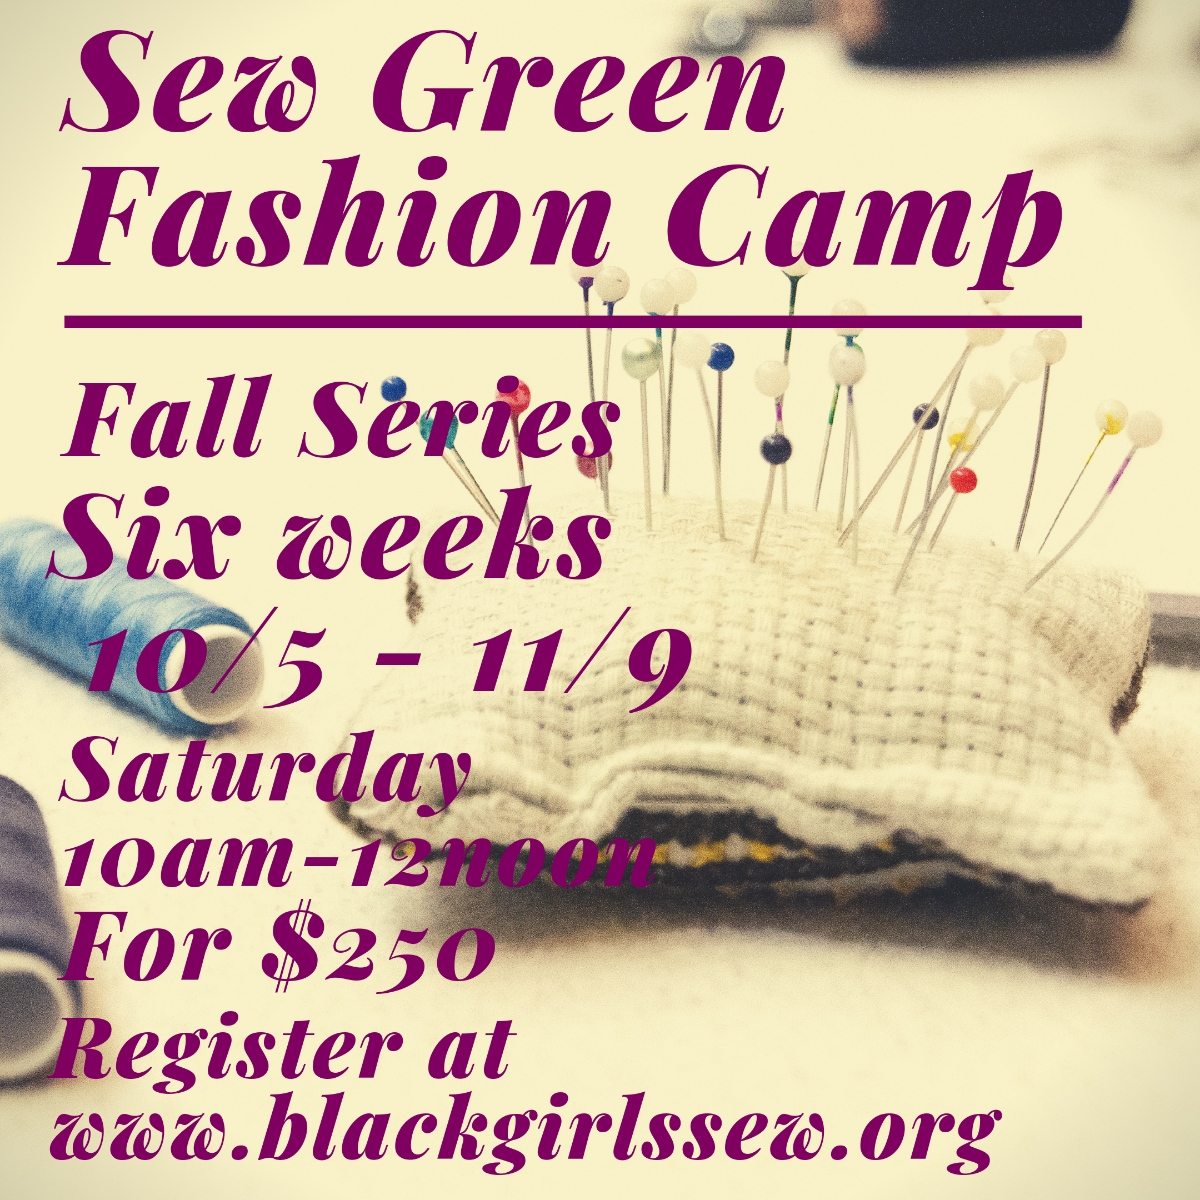 Sew Green FashionCamp Fall Series (Ages 7&up) - October 5th - November 9thSaturday Mornings 10am - 12pm$250 - includes sewing machine and suppliesCLICK HERE TO REGISTER